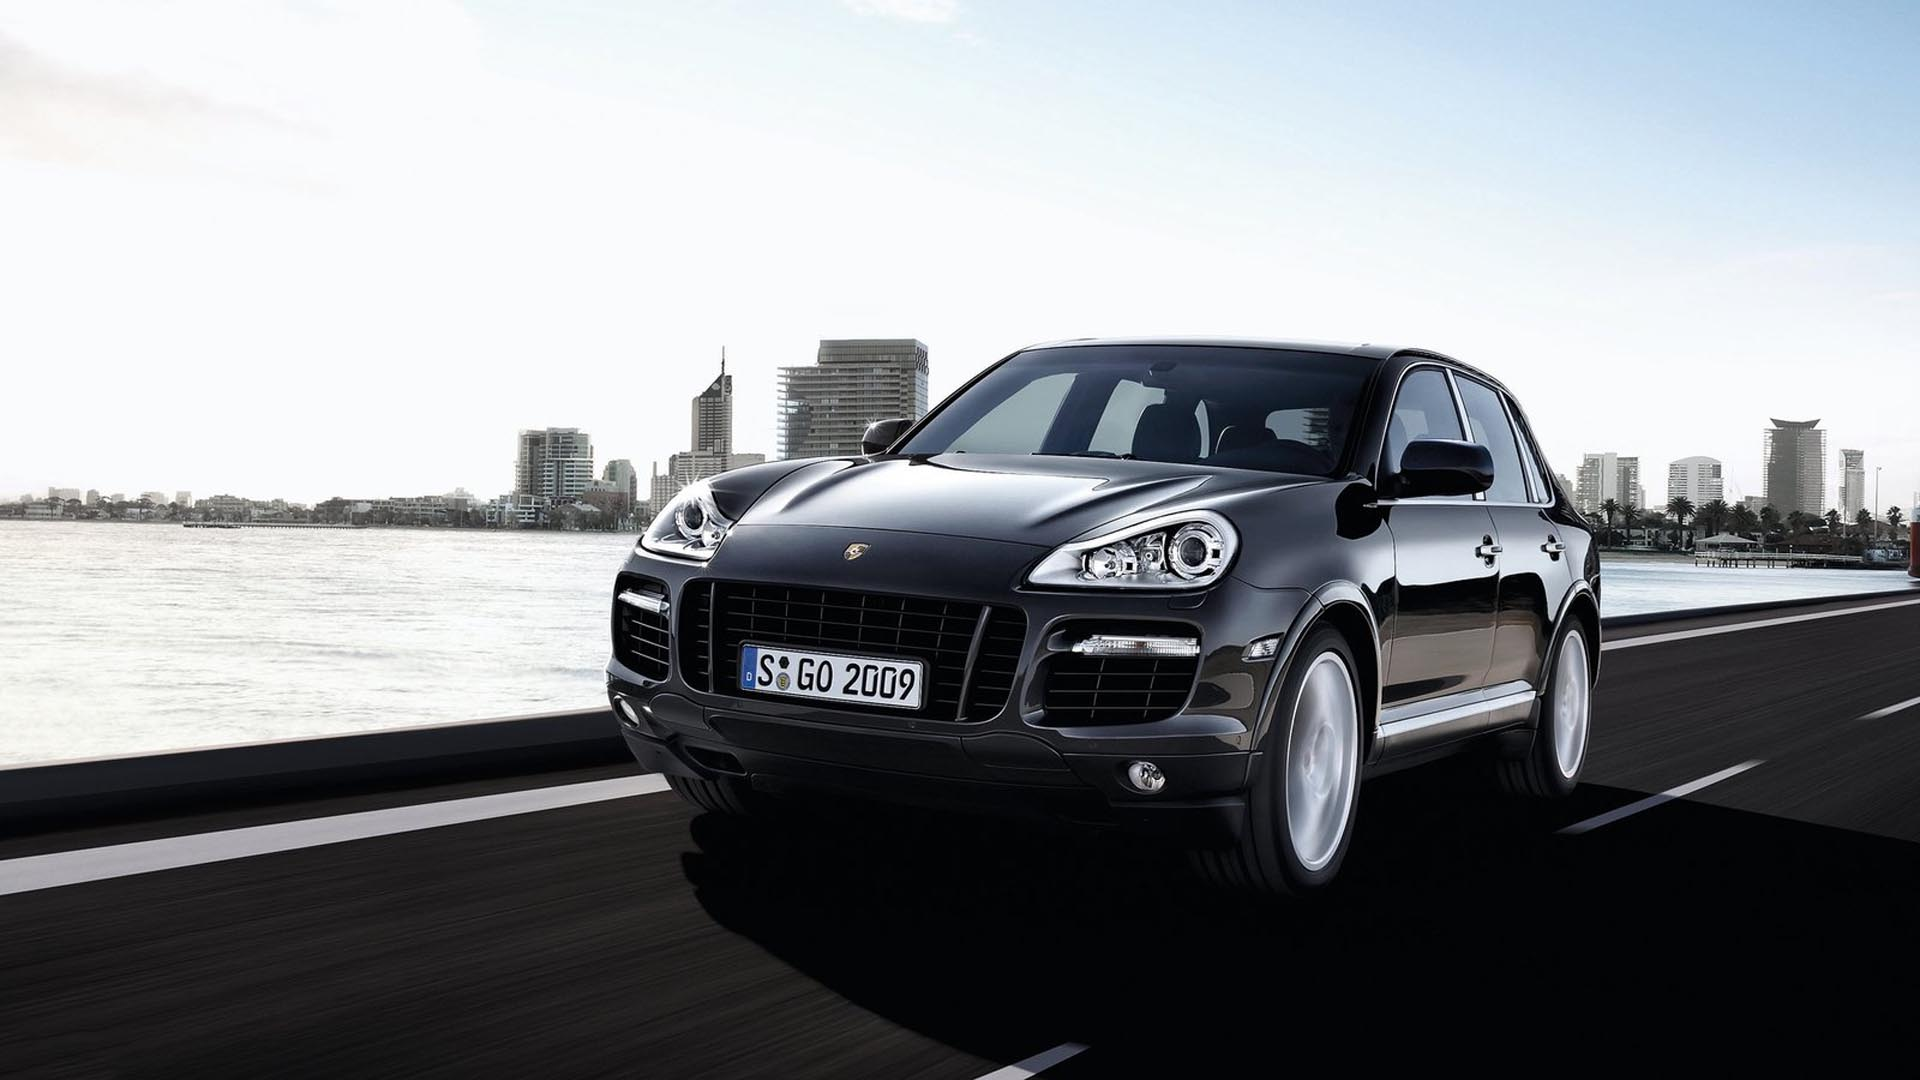 Is The Porsche Cayenne Reliable?